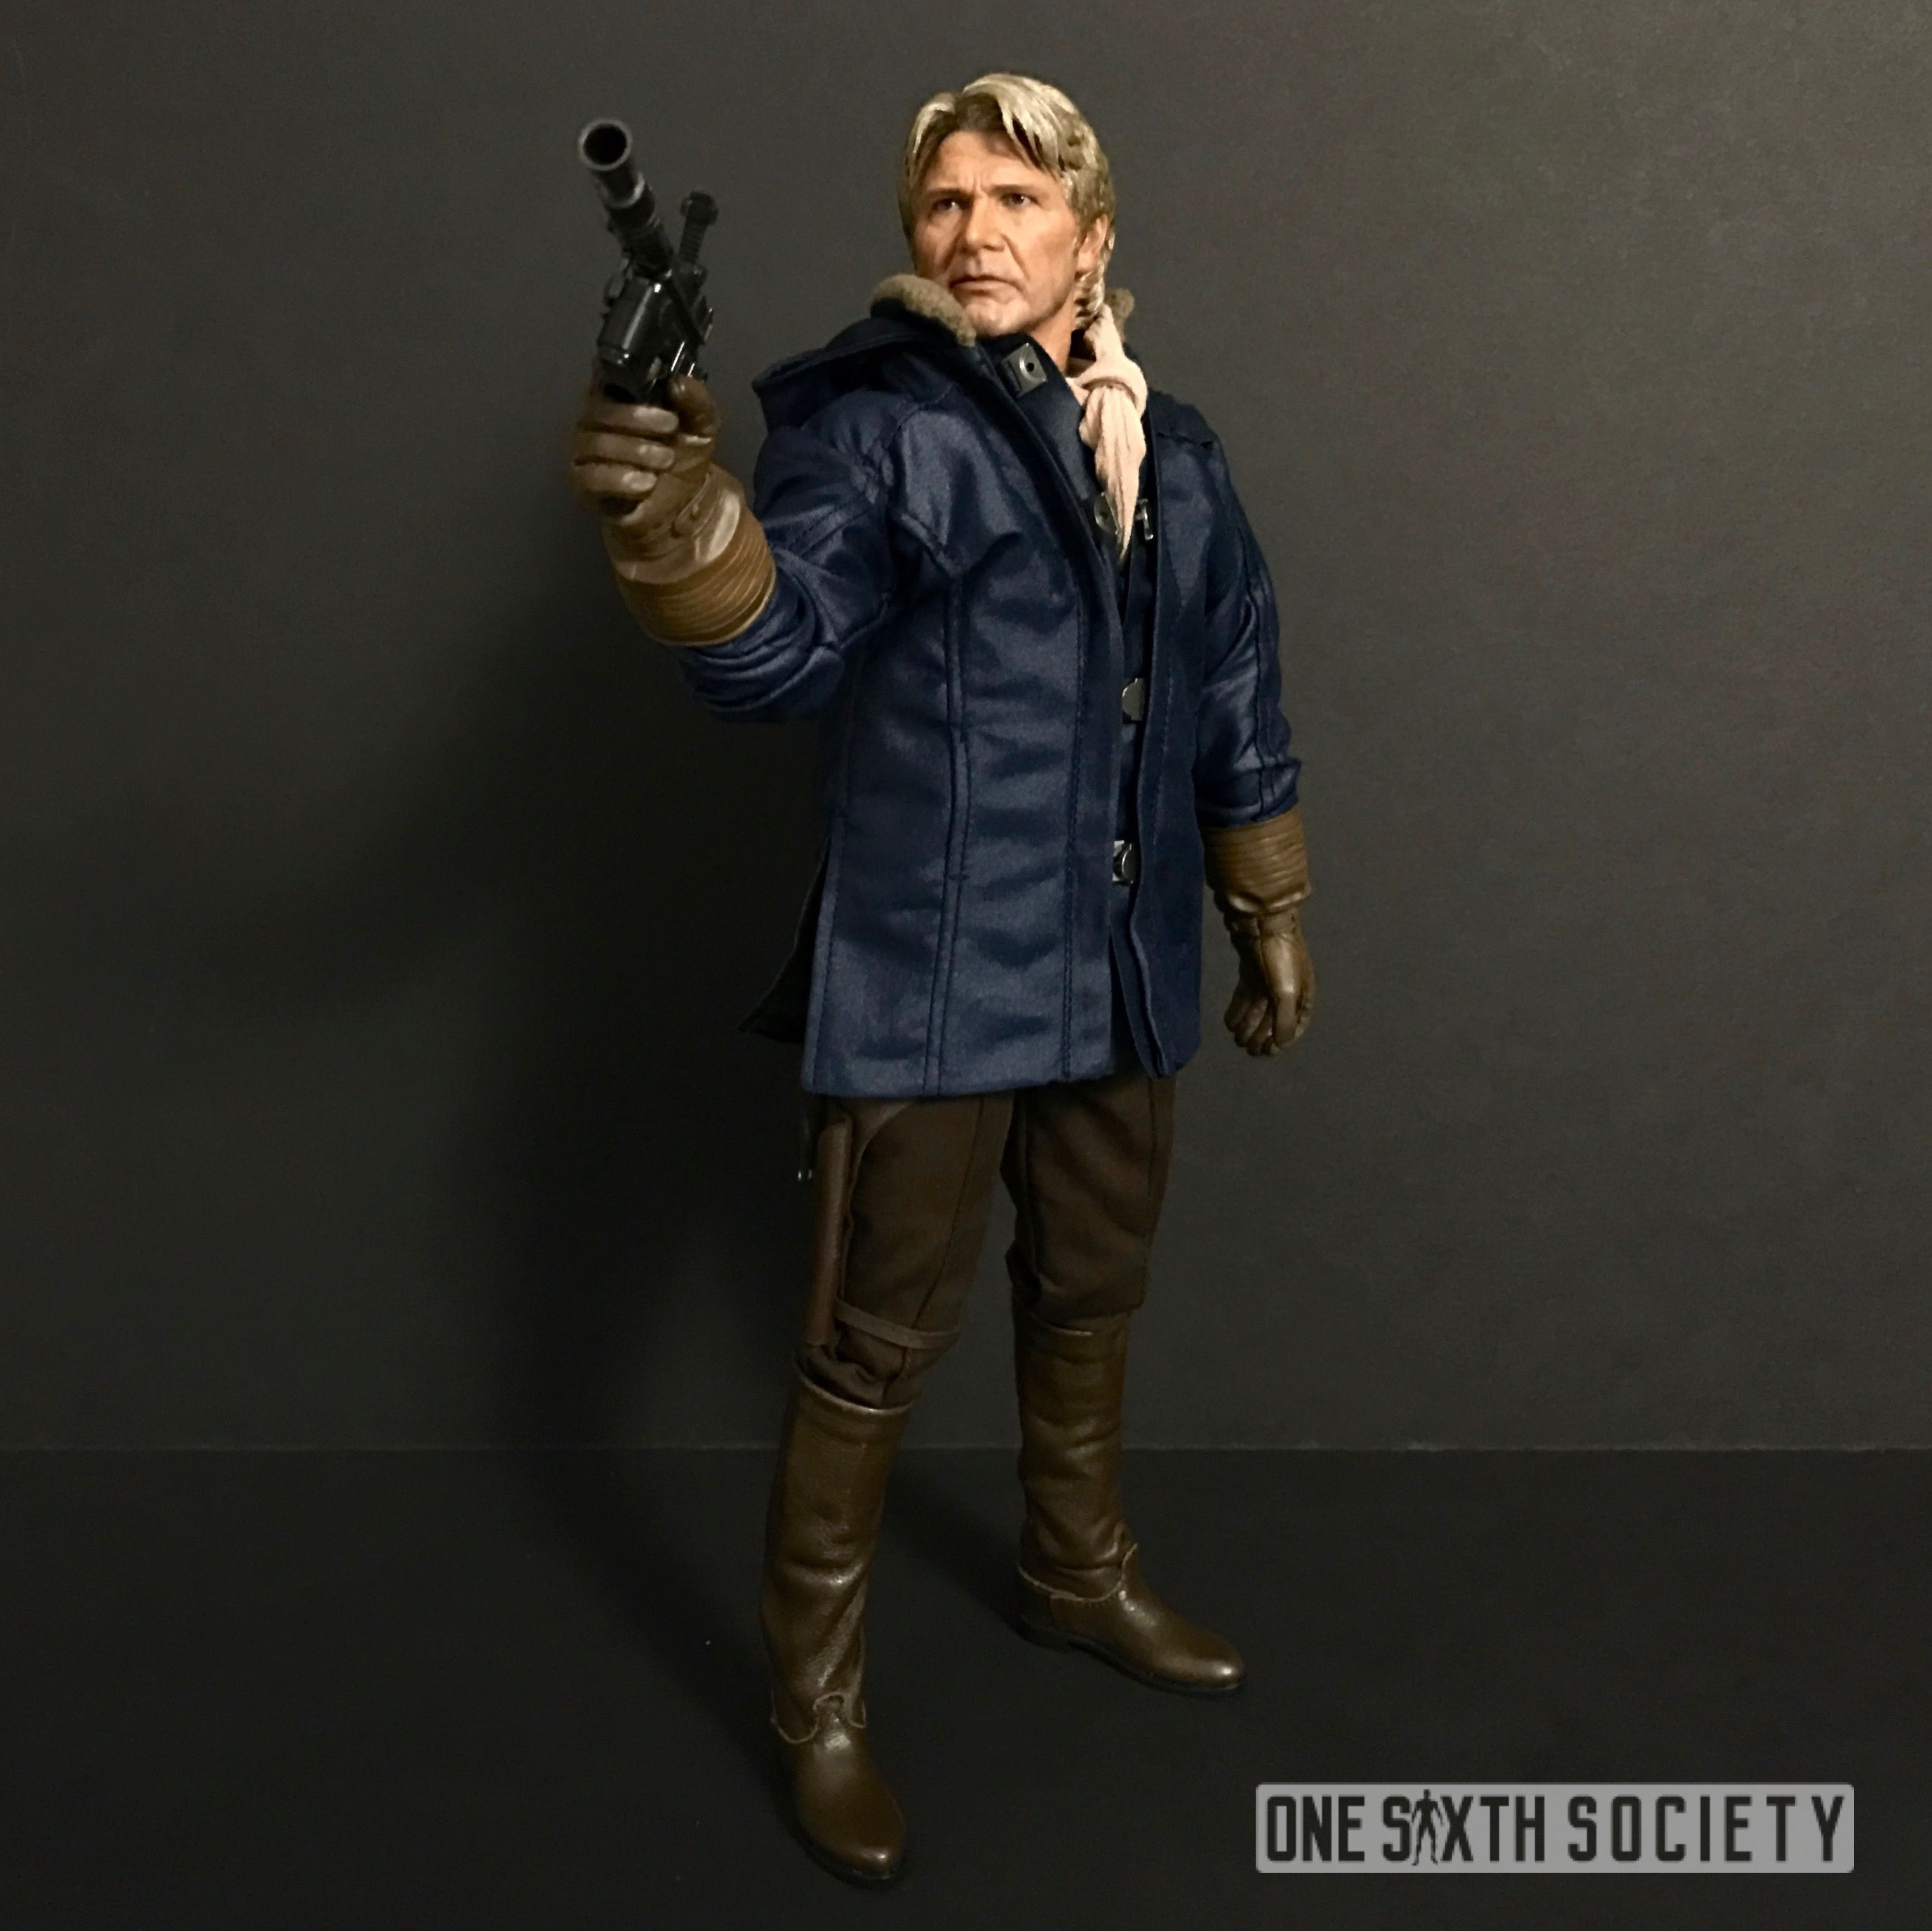 Check out all the Cool accessories The new Hot Toys Force Awakens Han Solo comes with, including a Winter Coat!